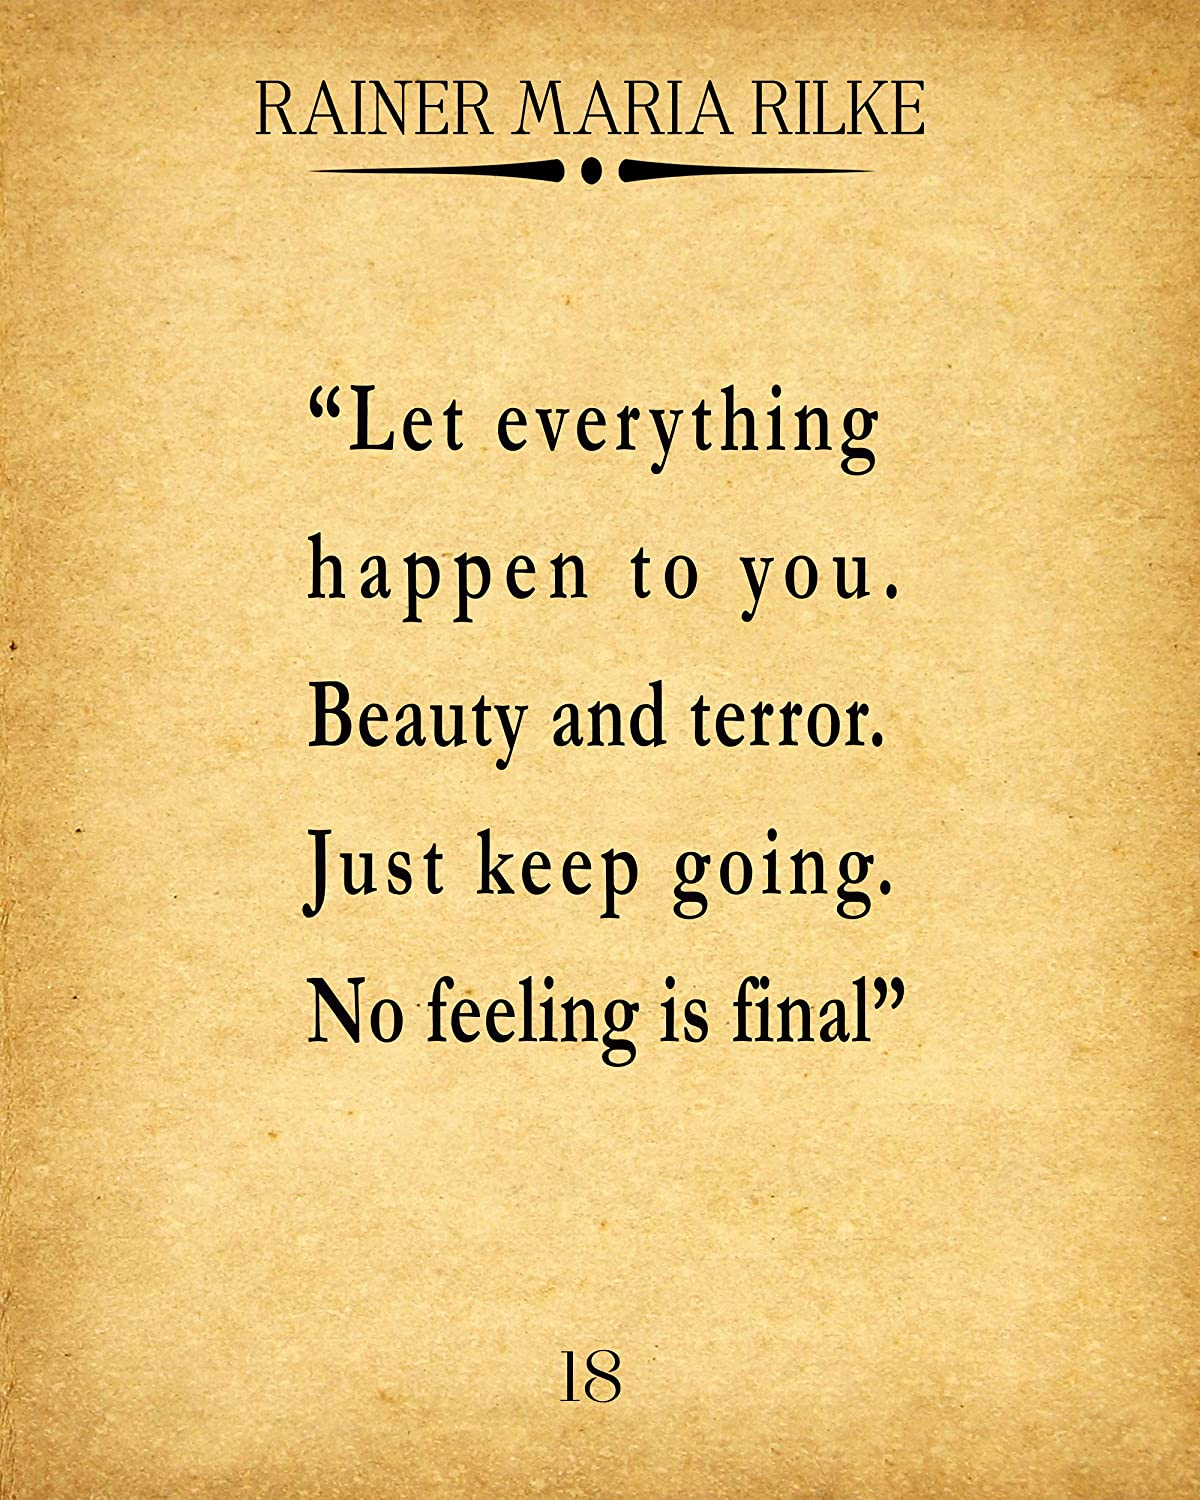 Wallbuddy Rainer Maria Rilke Quote Let Everything Happen to You (8 x 10, Vintage)